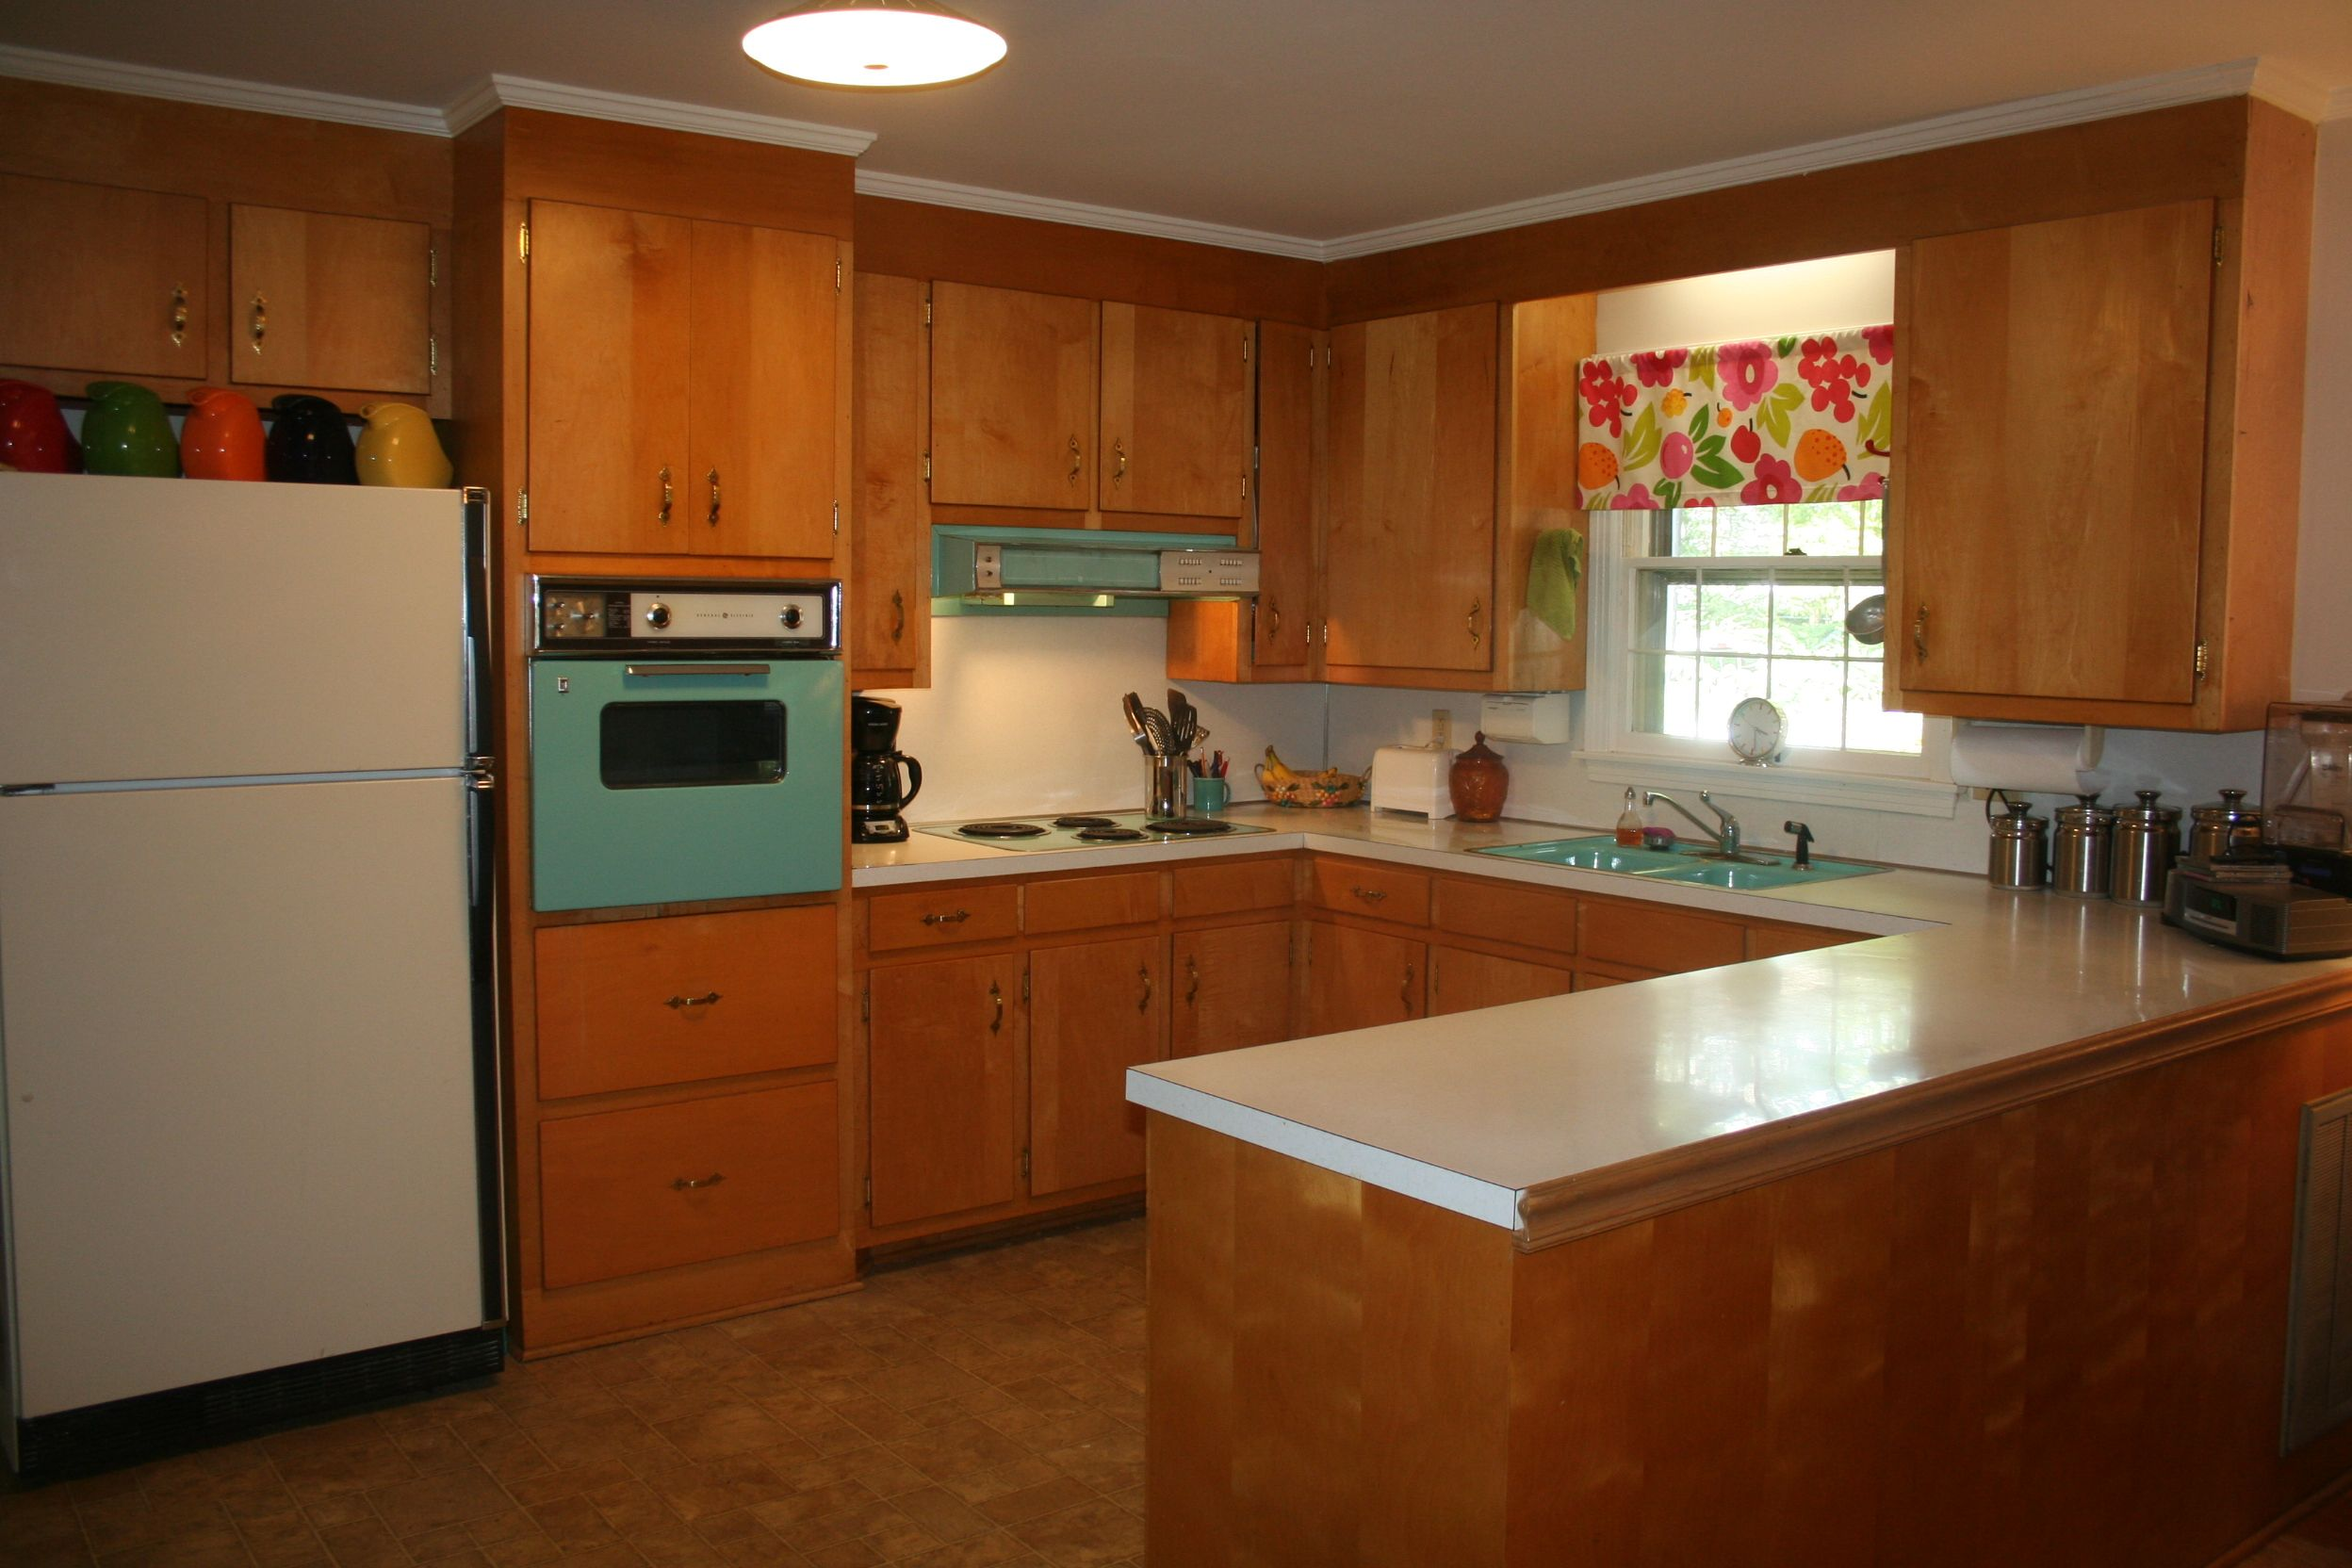 Turquoise Kitchen Appliances Modern Cabinets For Sale 208 Pictures Of Vintage Stoves Refrigerators And Large